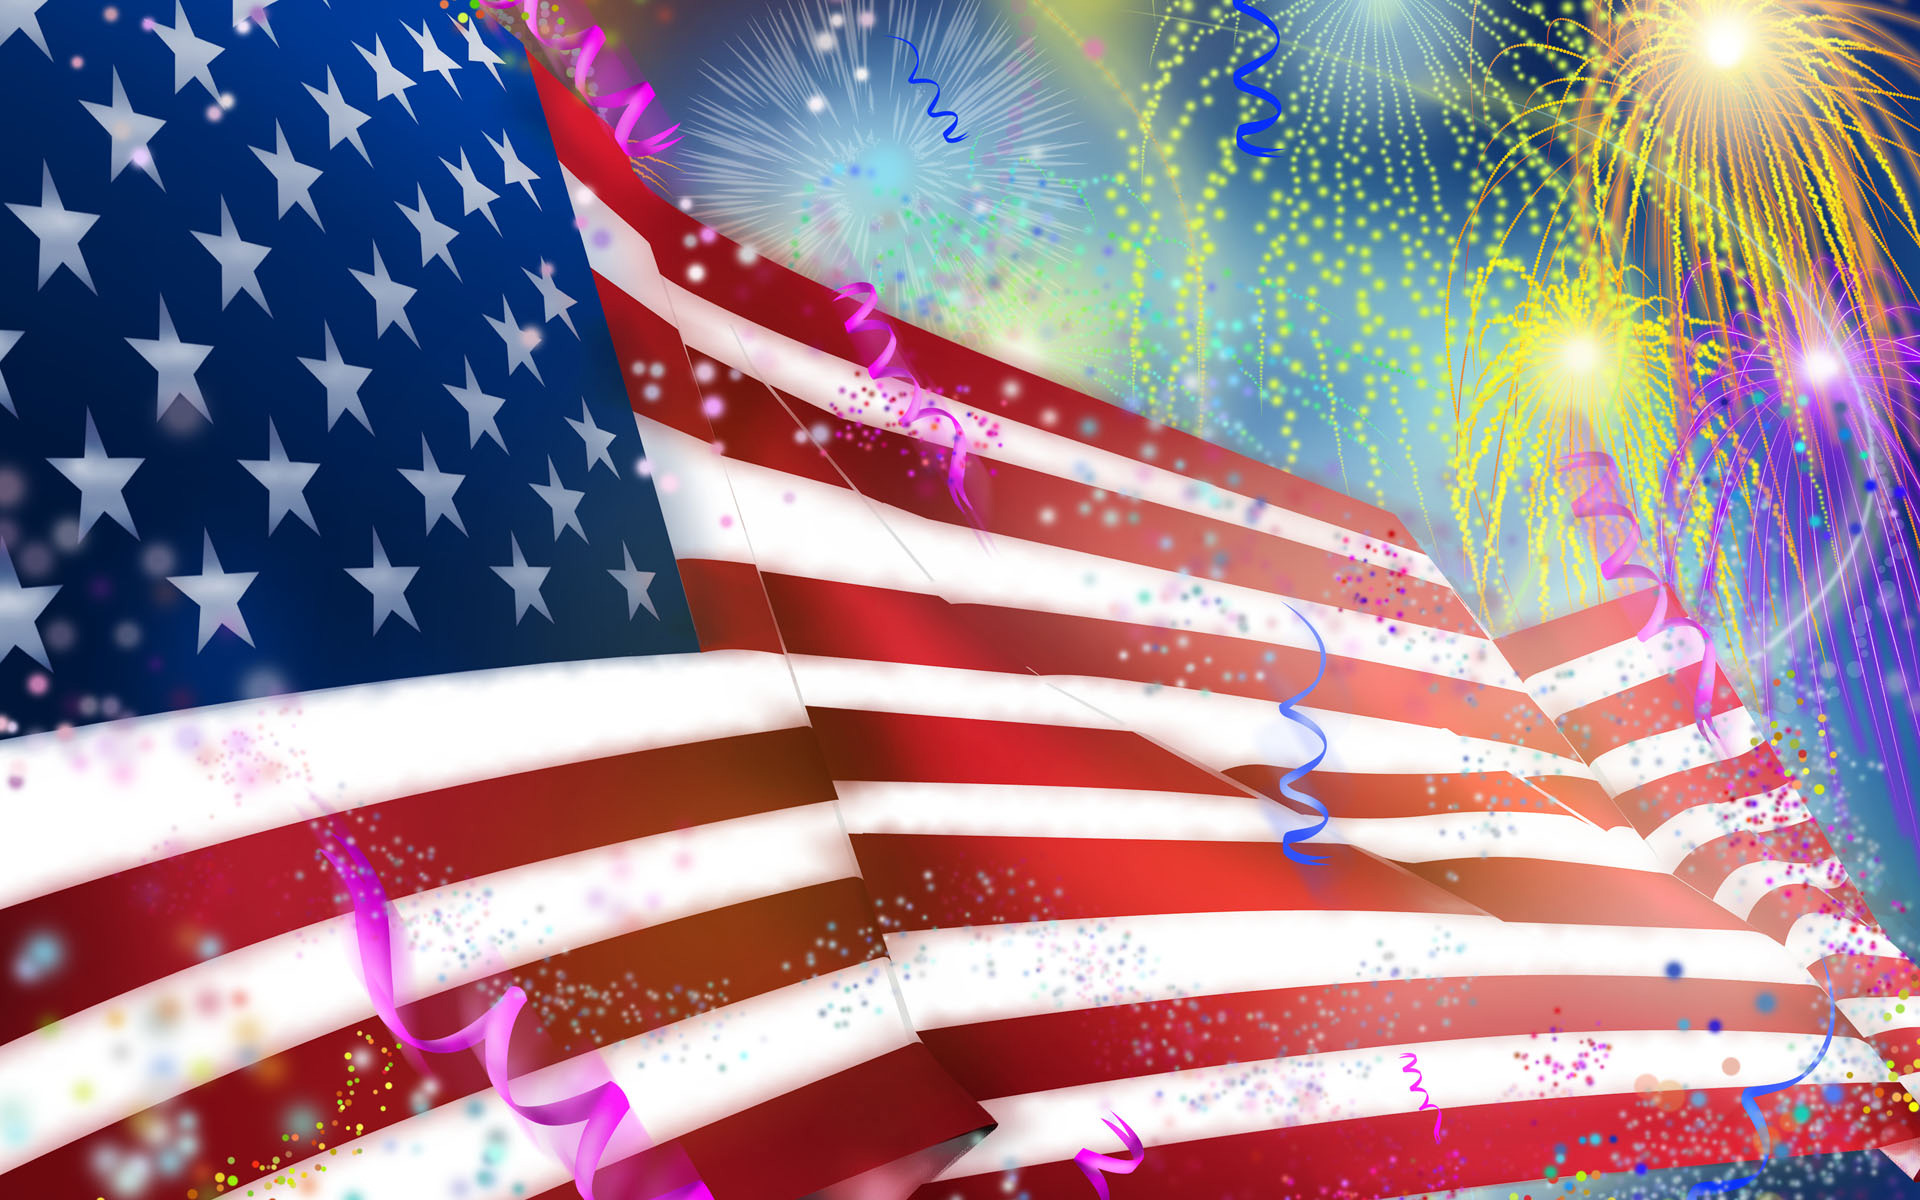 American Independence Day Wallpaper 1920x1200